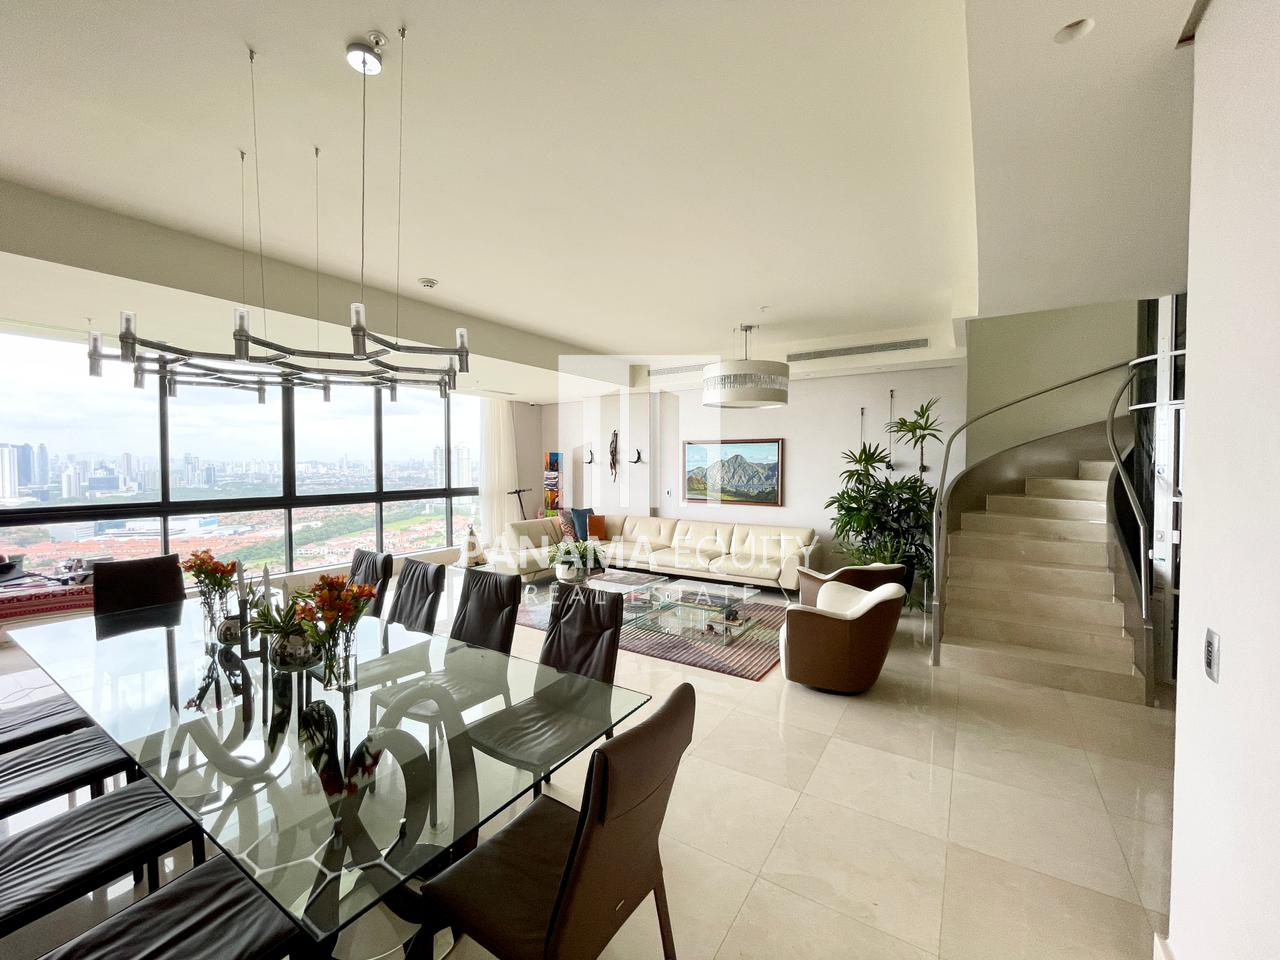 Two Story Panama Penthouse Condo For Sale